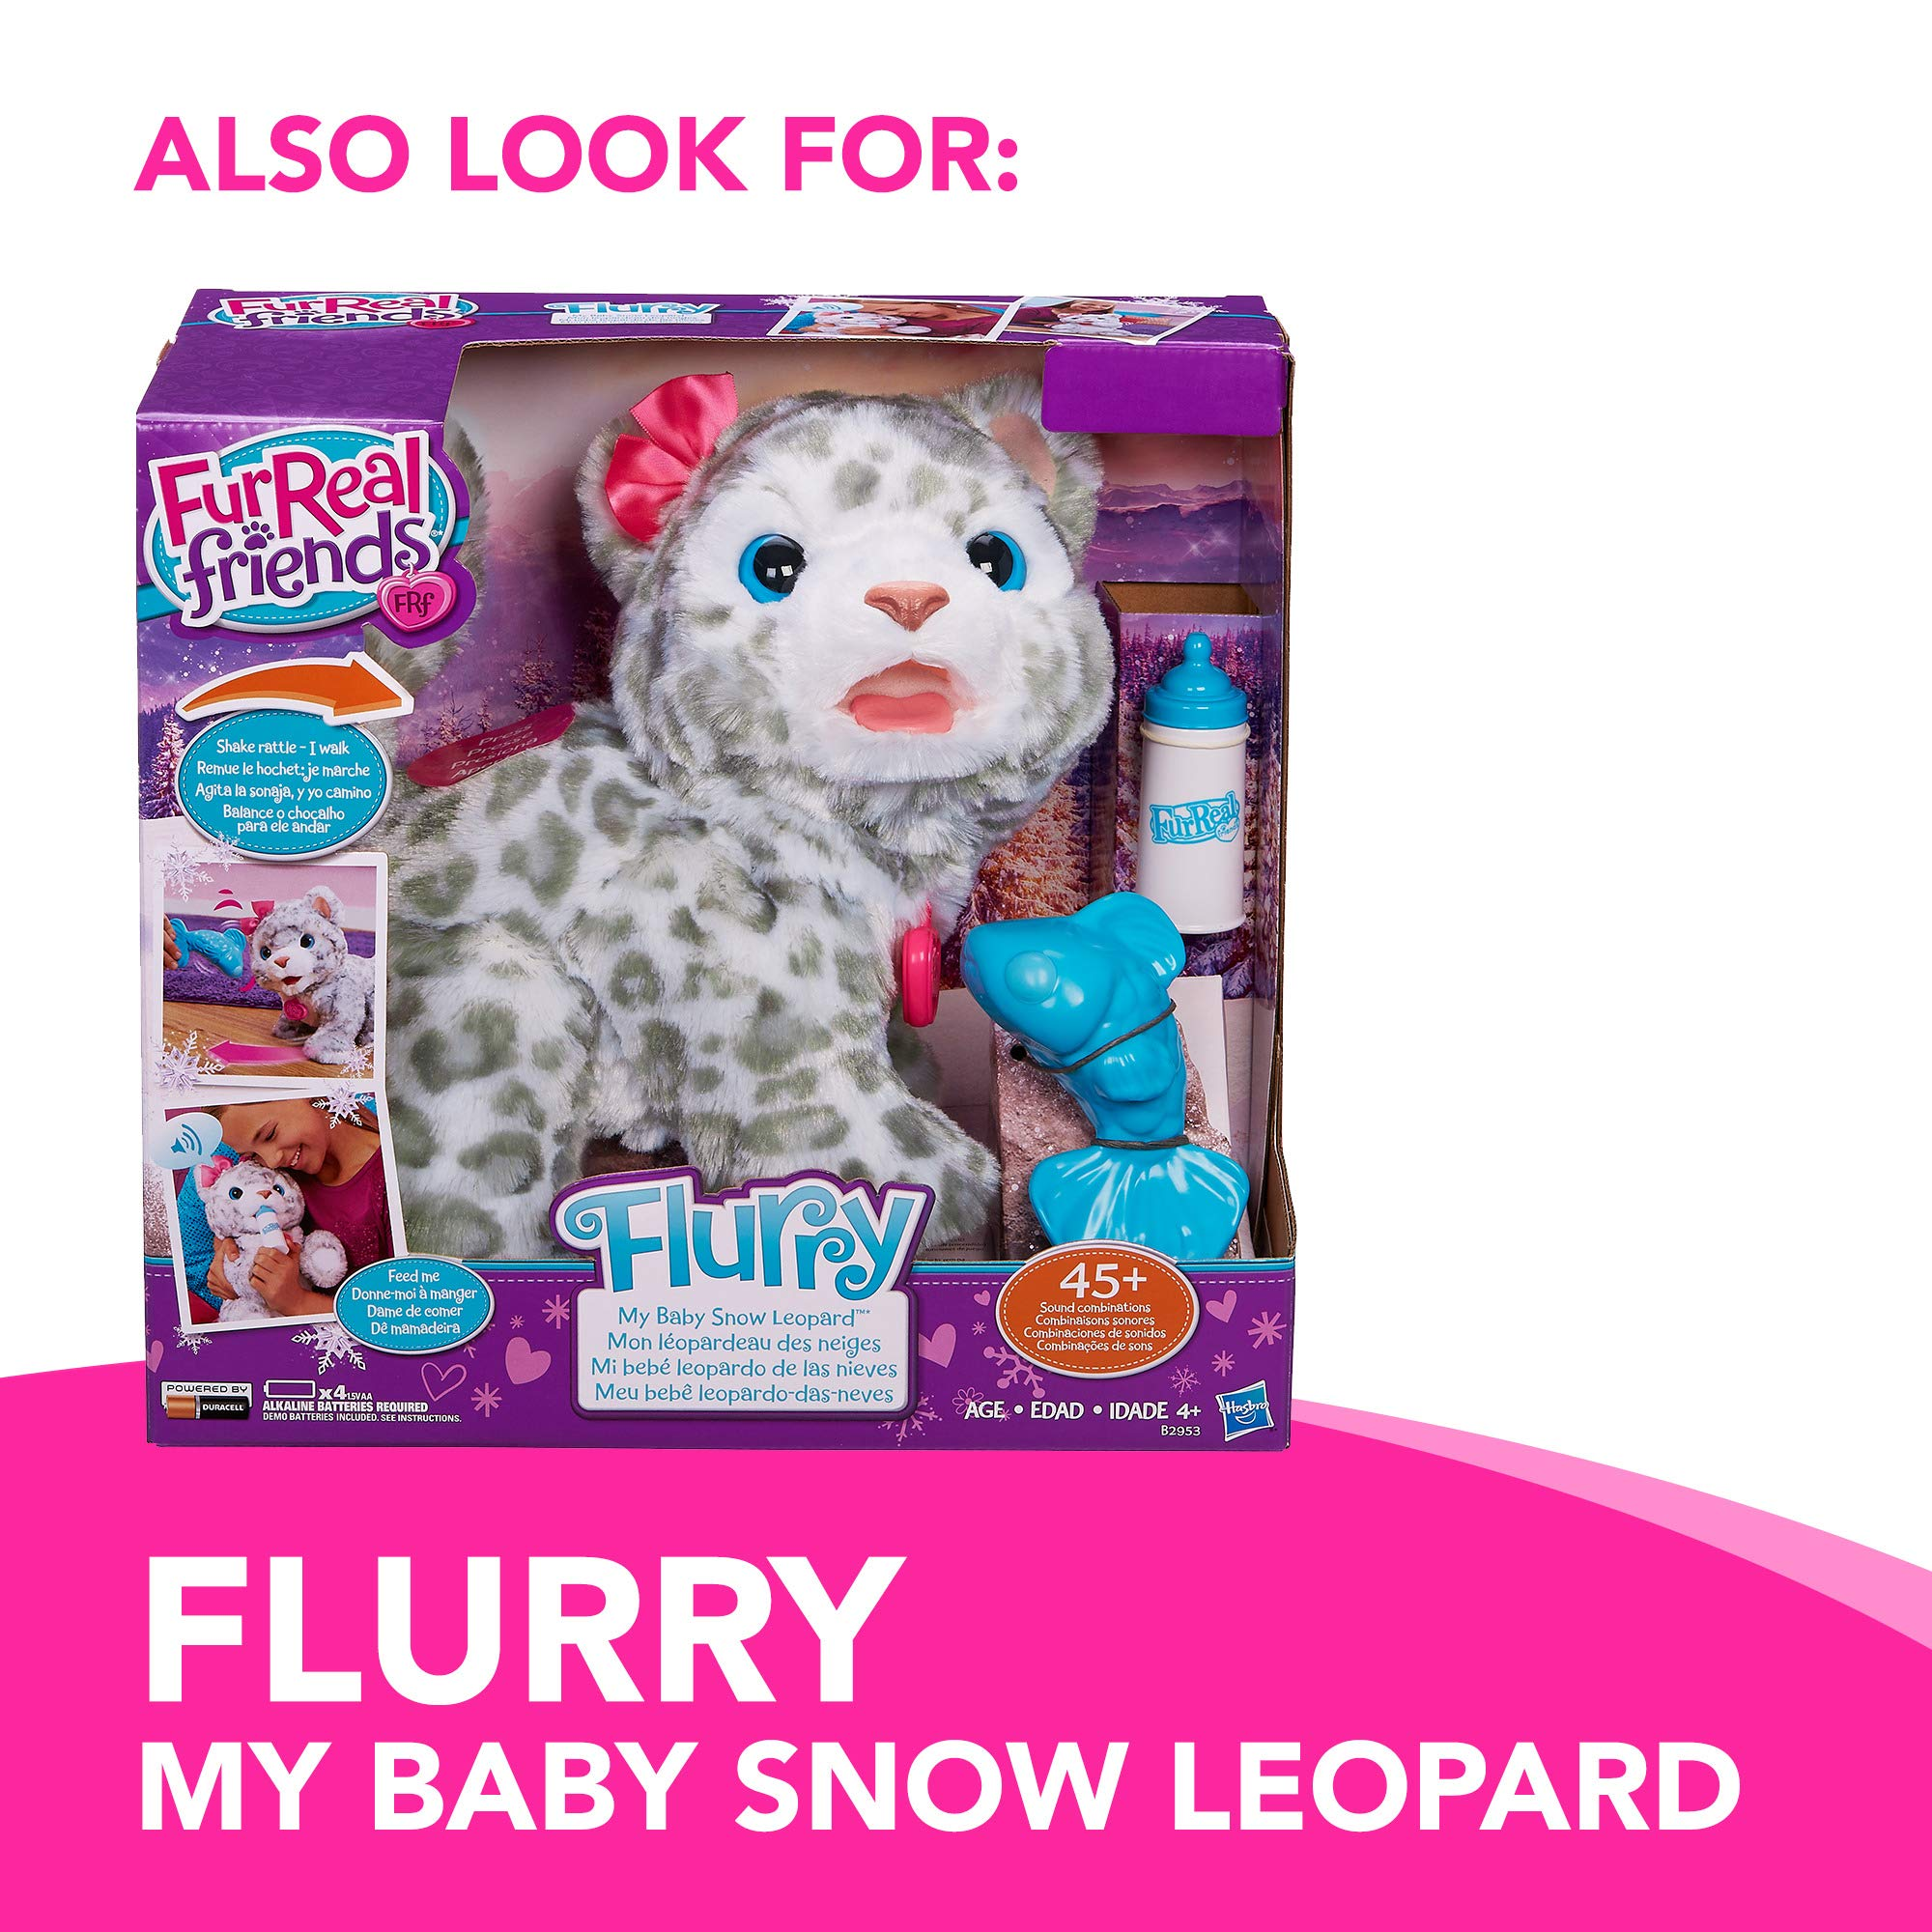 FurReal B5936AF1 Bootsie Interactive Plush Kitty Toy, Ages 4 & Up by FurReal (Image #6)